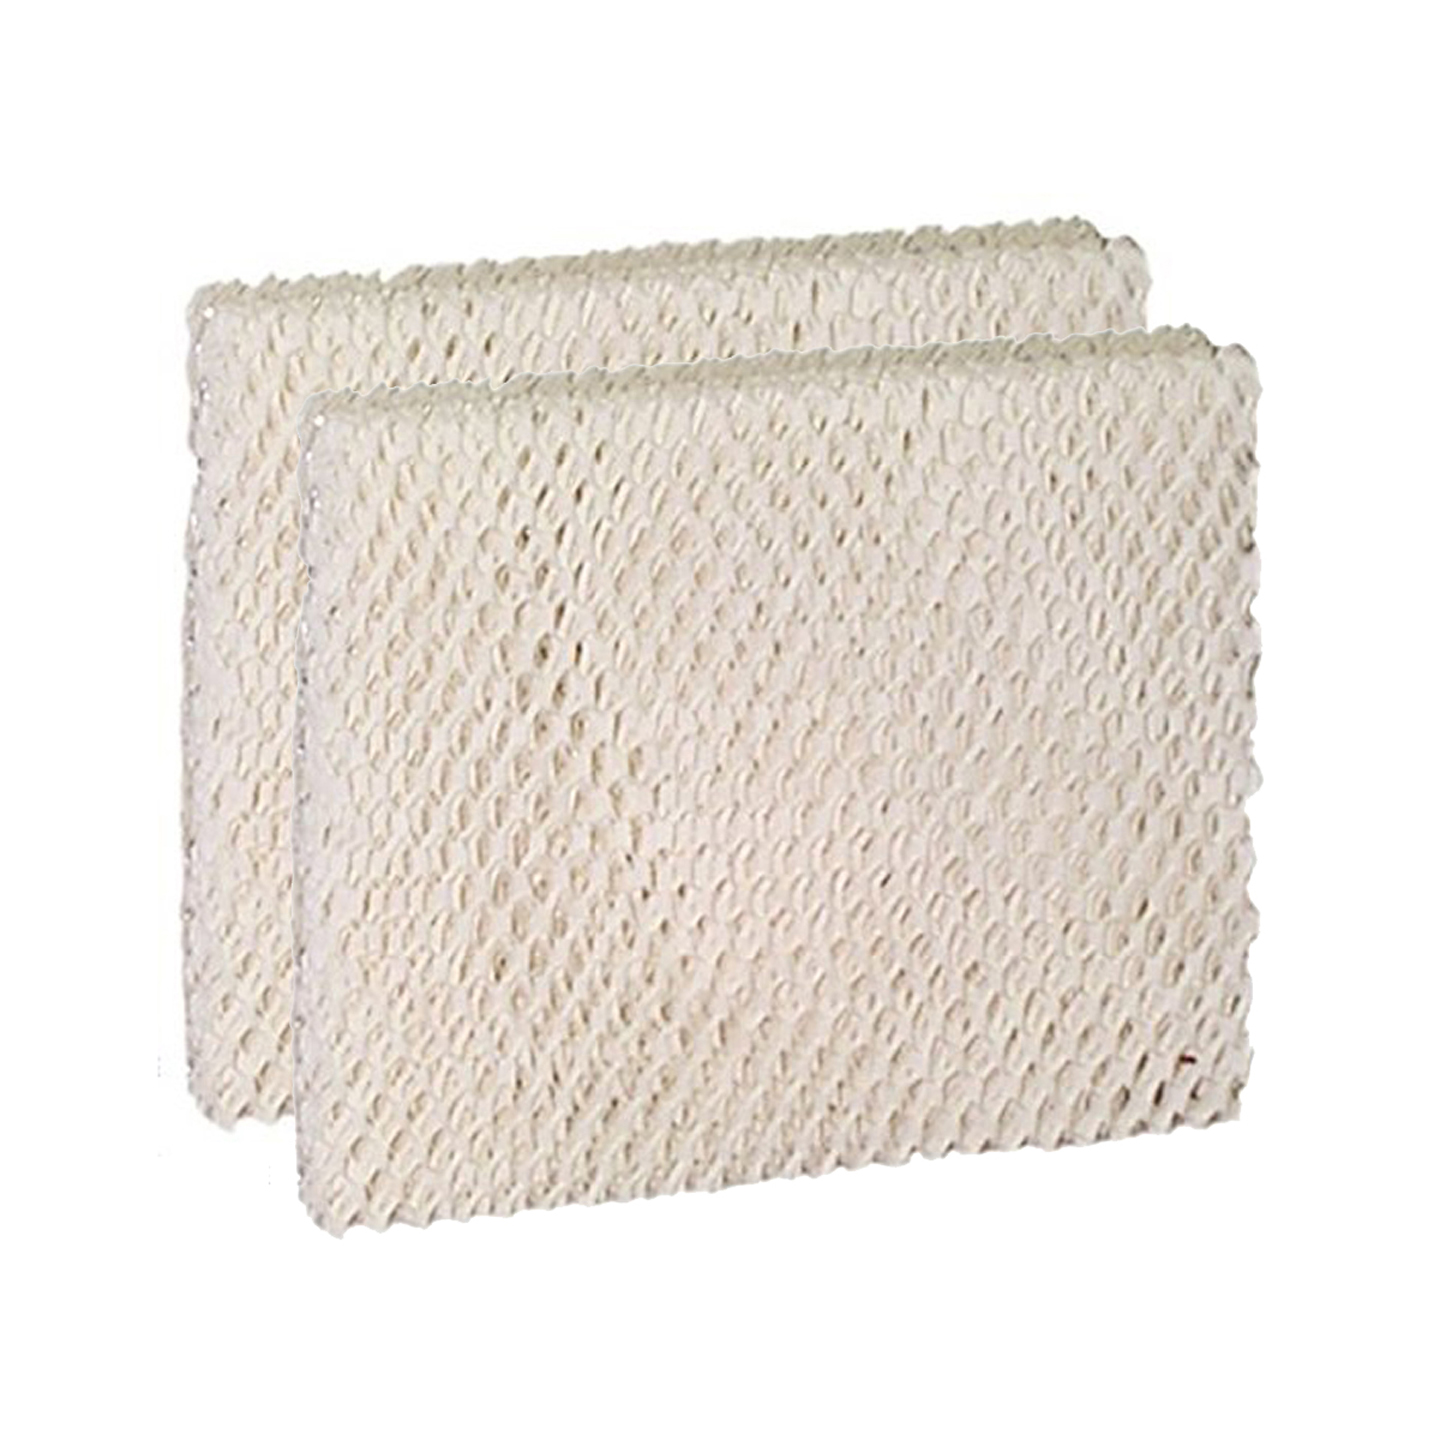 Aprilaire #45 Comparable Humidifier Replacement Filter by Tier1 (2-Pack) TIER1_HMF1320_2_PACK